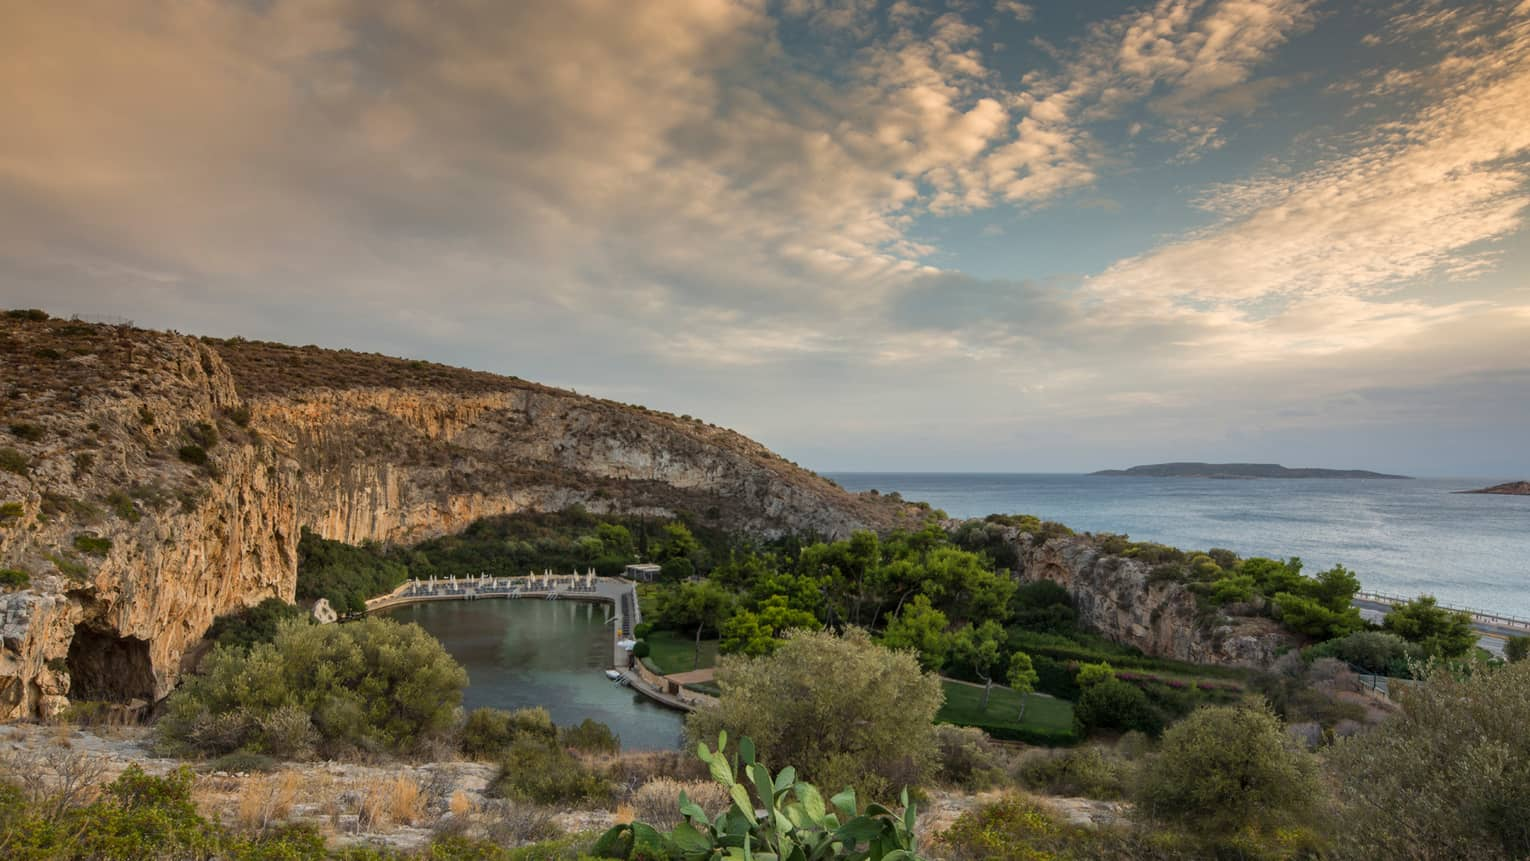 View of Vouliagmeni with rocky hill, green trees and shrubs overlooking ocean